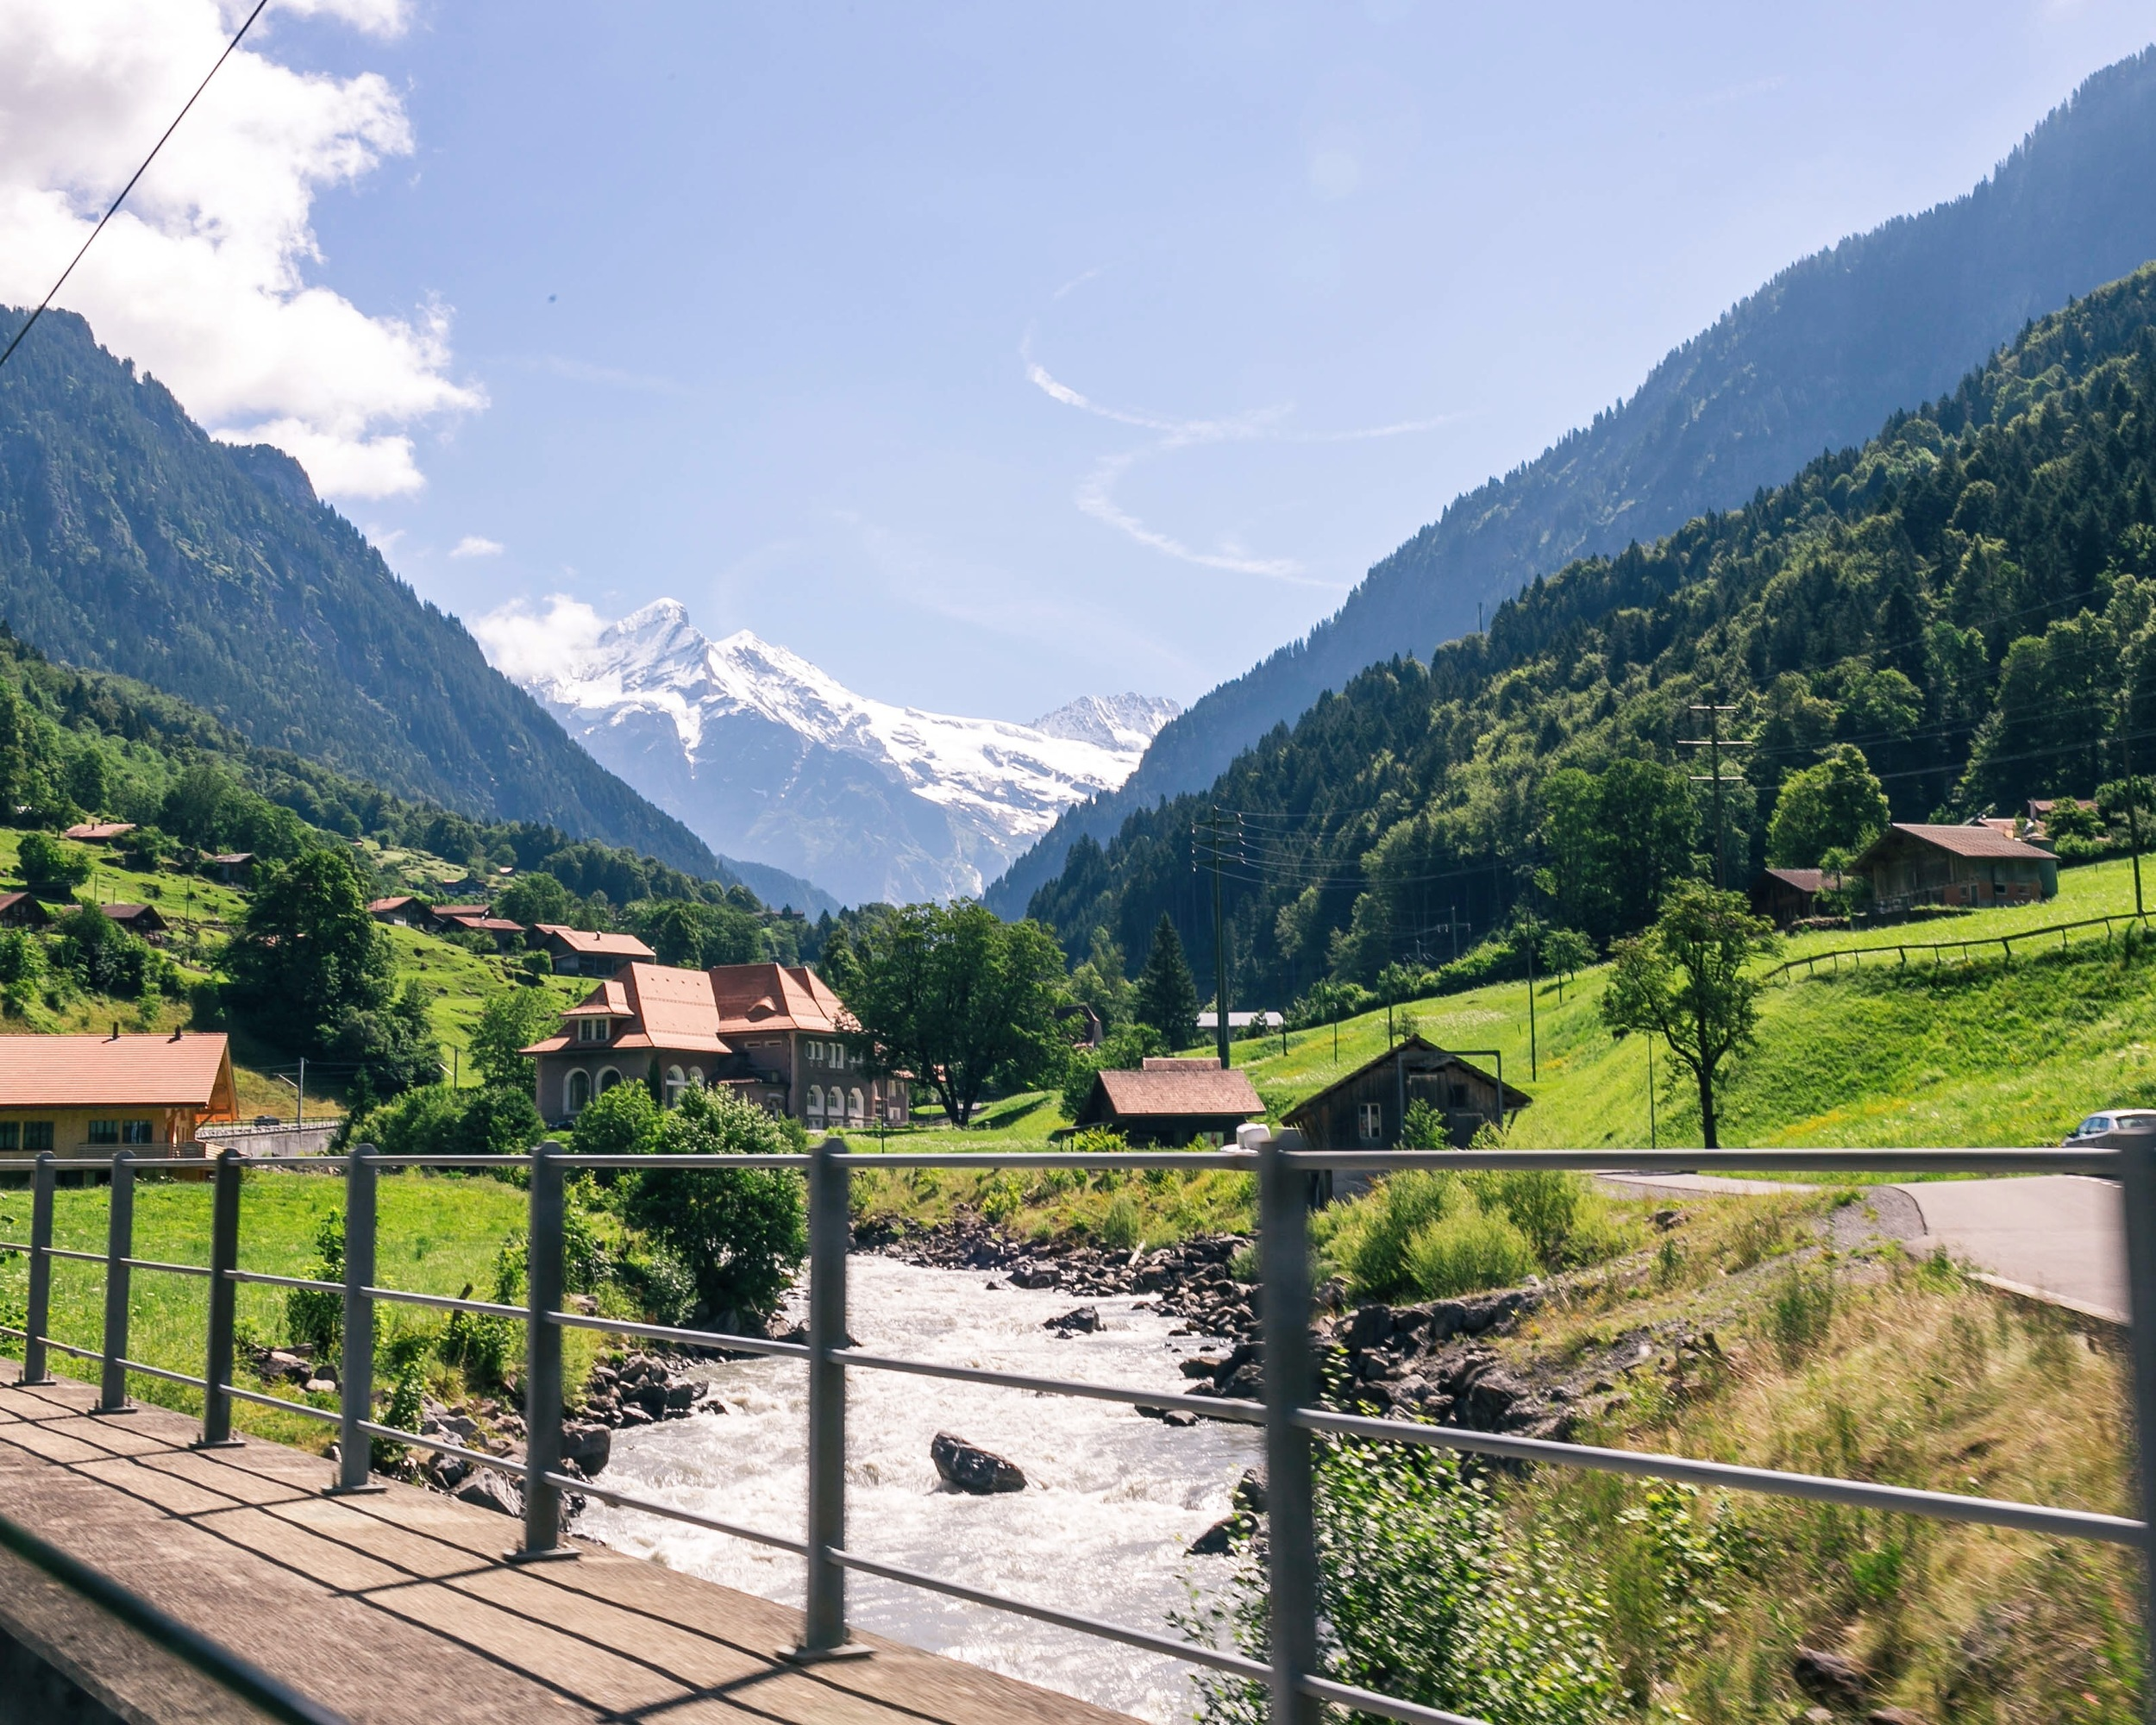 On a moving train in Switzerland shot with a Canon 6D